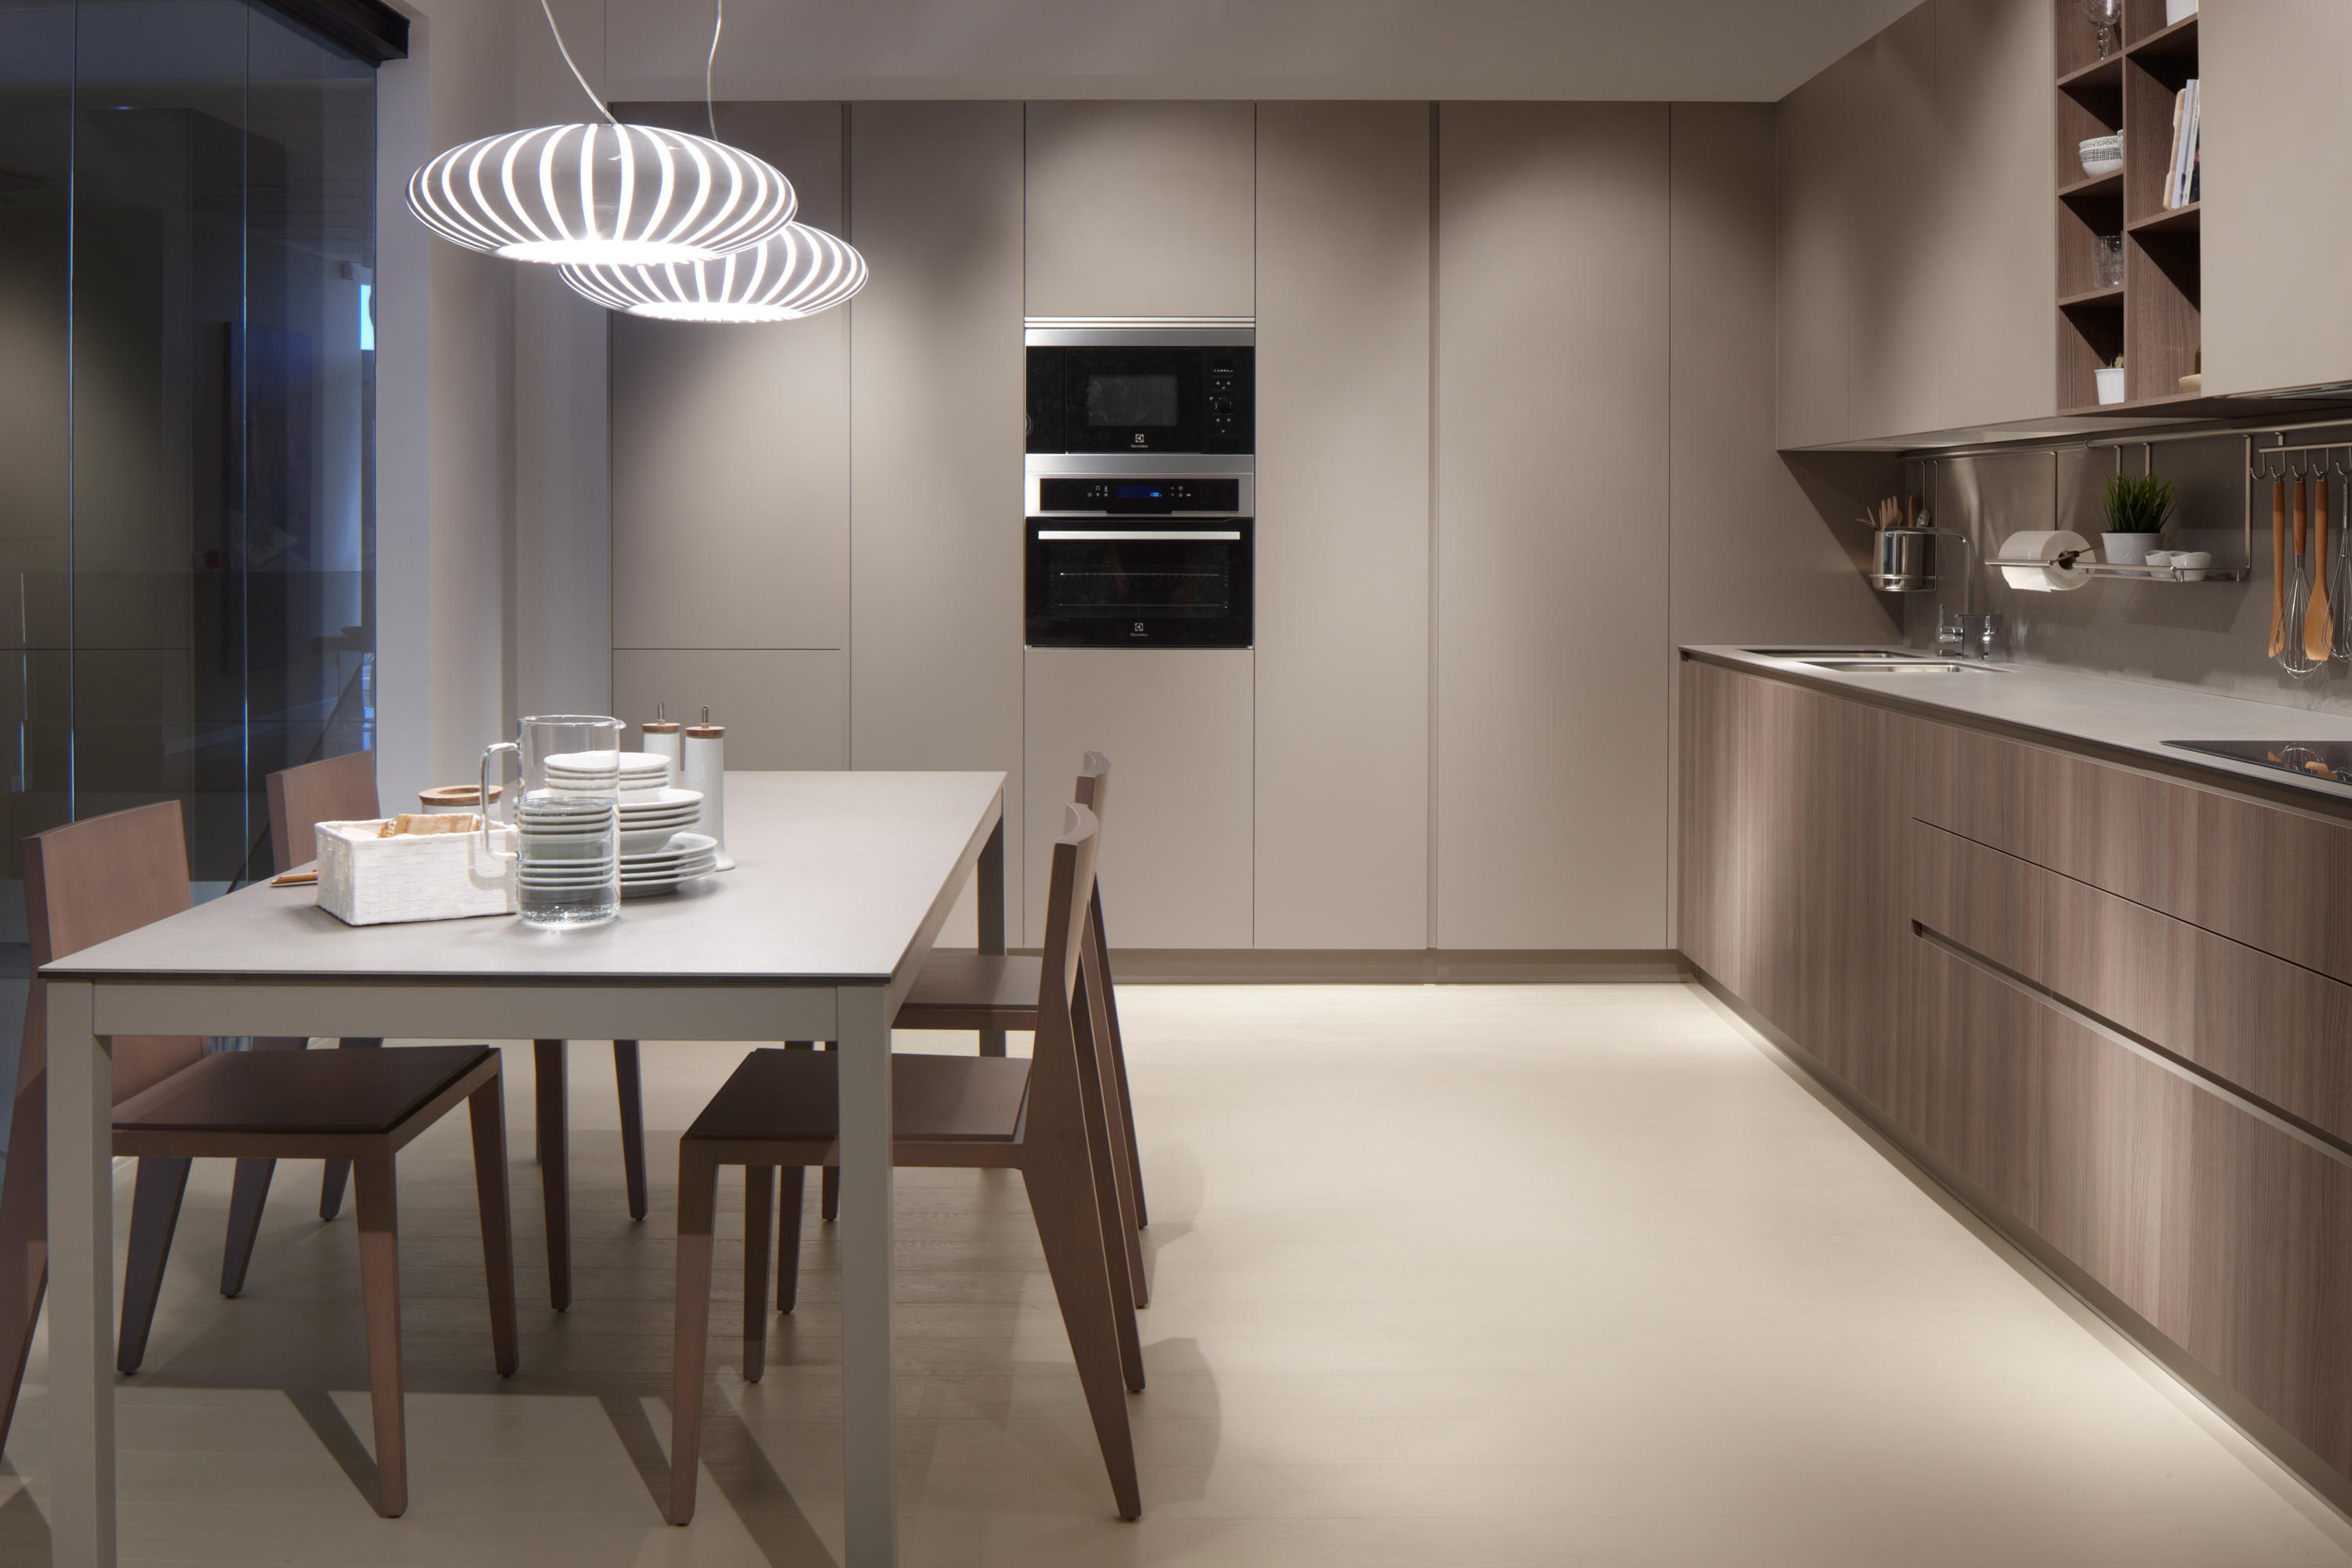 Serie 45 elm chocolate stone fitted kitchens from dica - Muebles de cocina dica ...